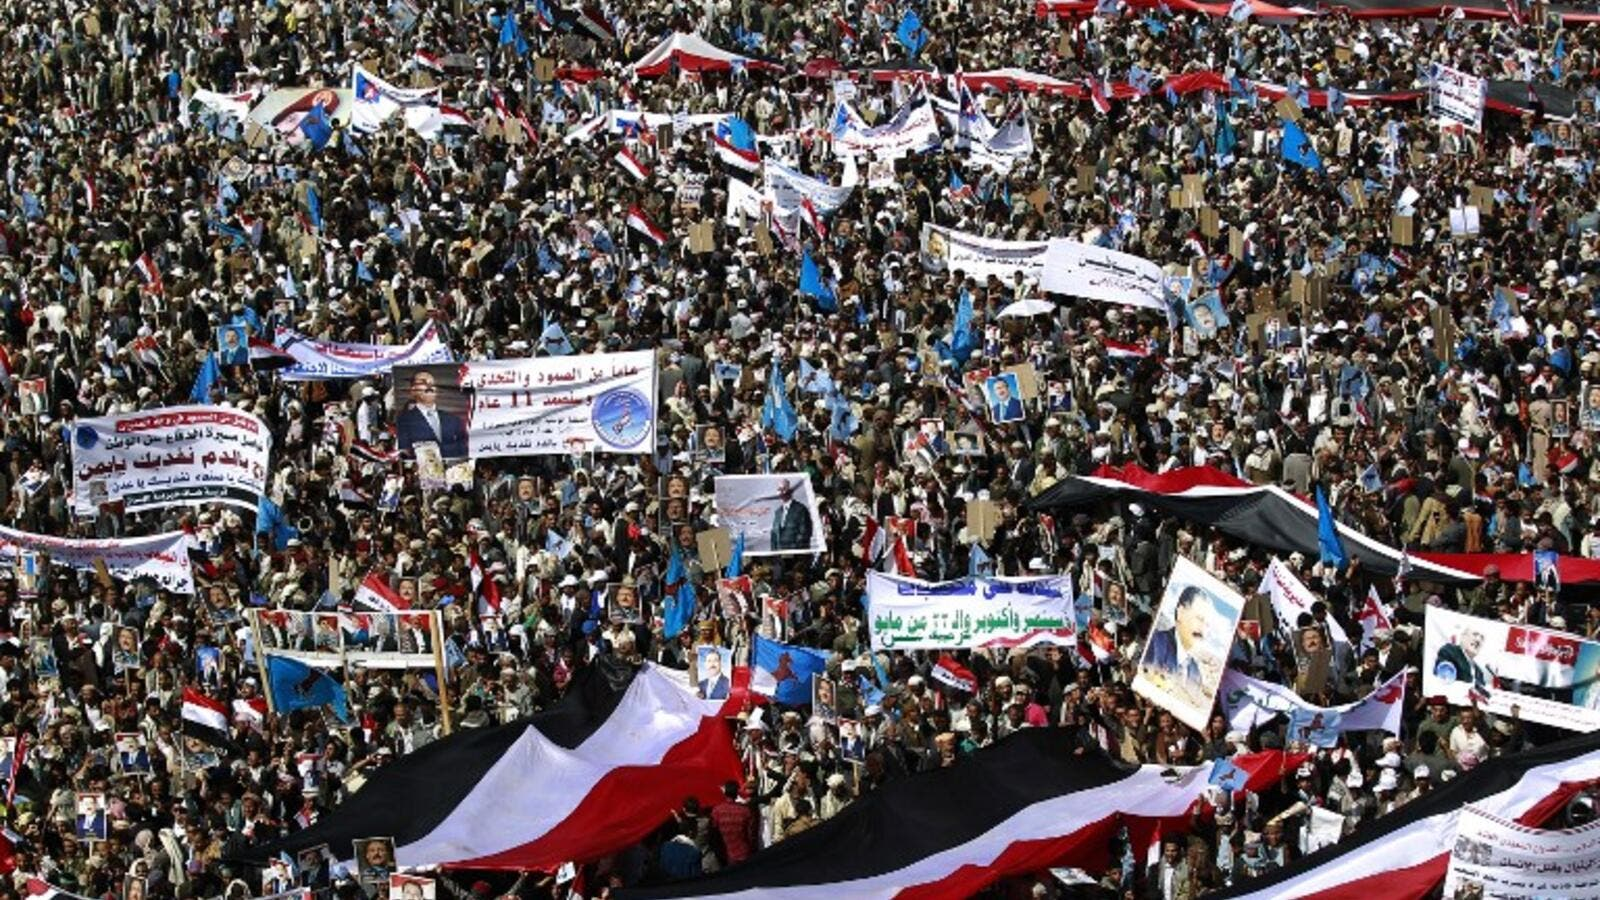 Yemenis wave national flags and hold placards during a protest against the Saudi-led coalition, commemorating one year of the alliance's military campaign against insurgents on March 26, 2016 next to the Monument to the Unknown Soldier in the Yemeni capital Sanaa. (AFP/Mohammed Huwais)